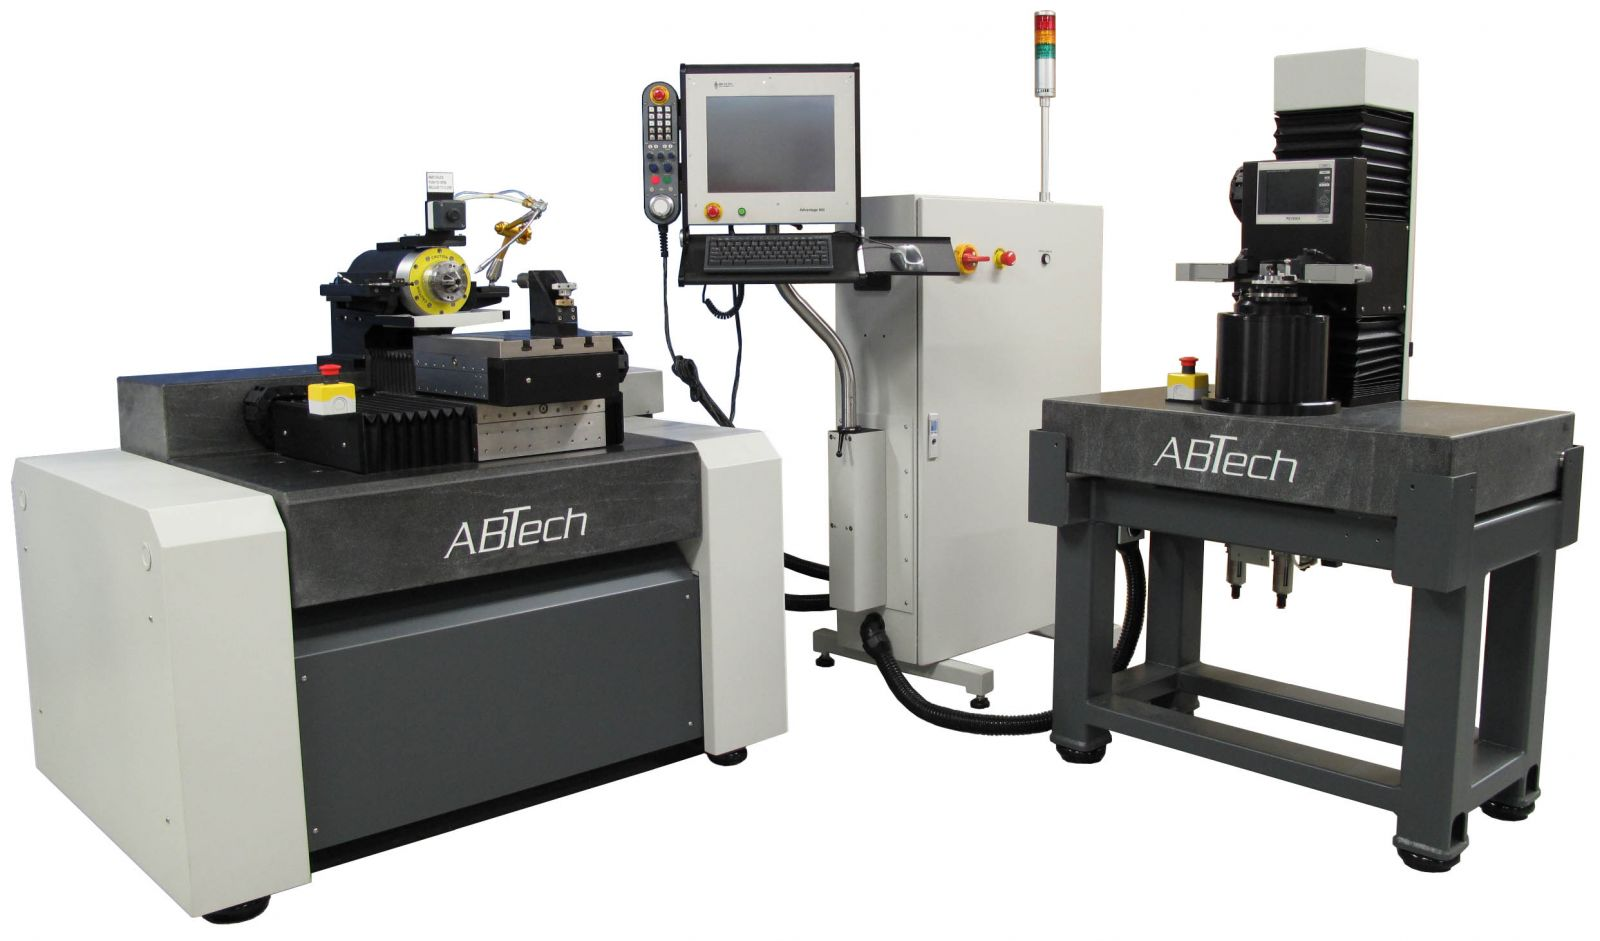 Auto Manufacturer Selects Abtech To Help Return Manufacturing To Us